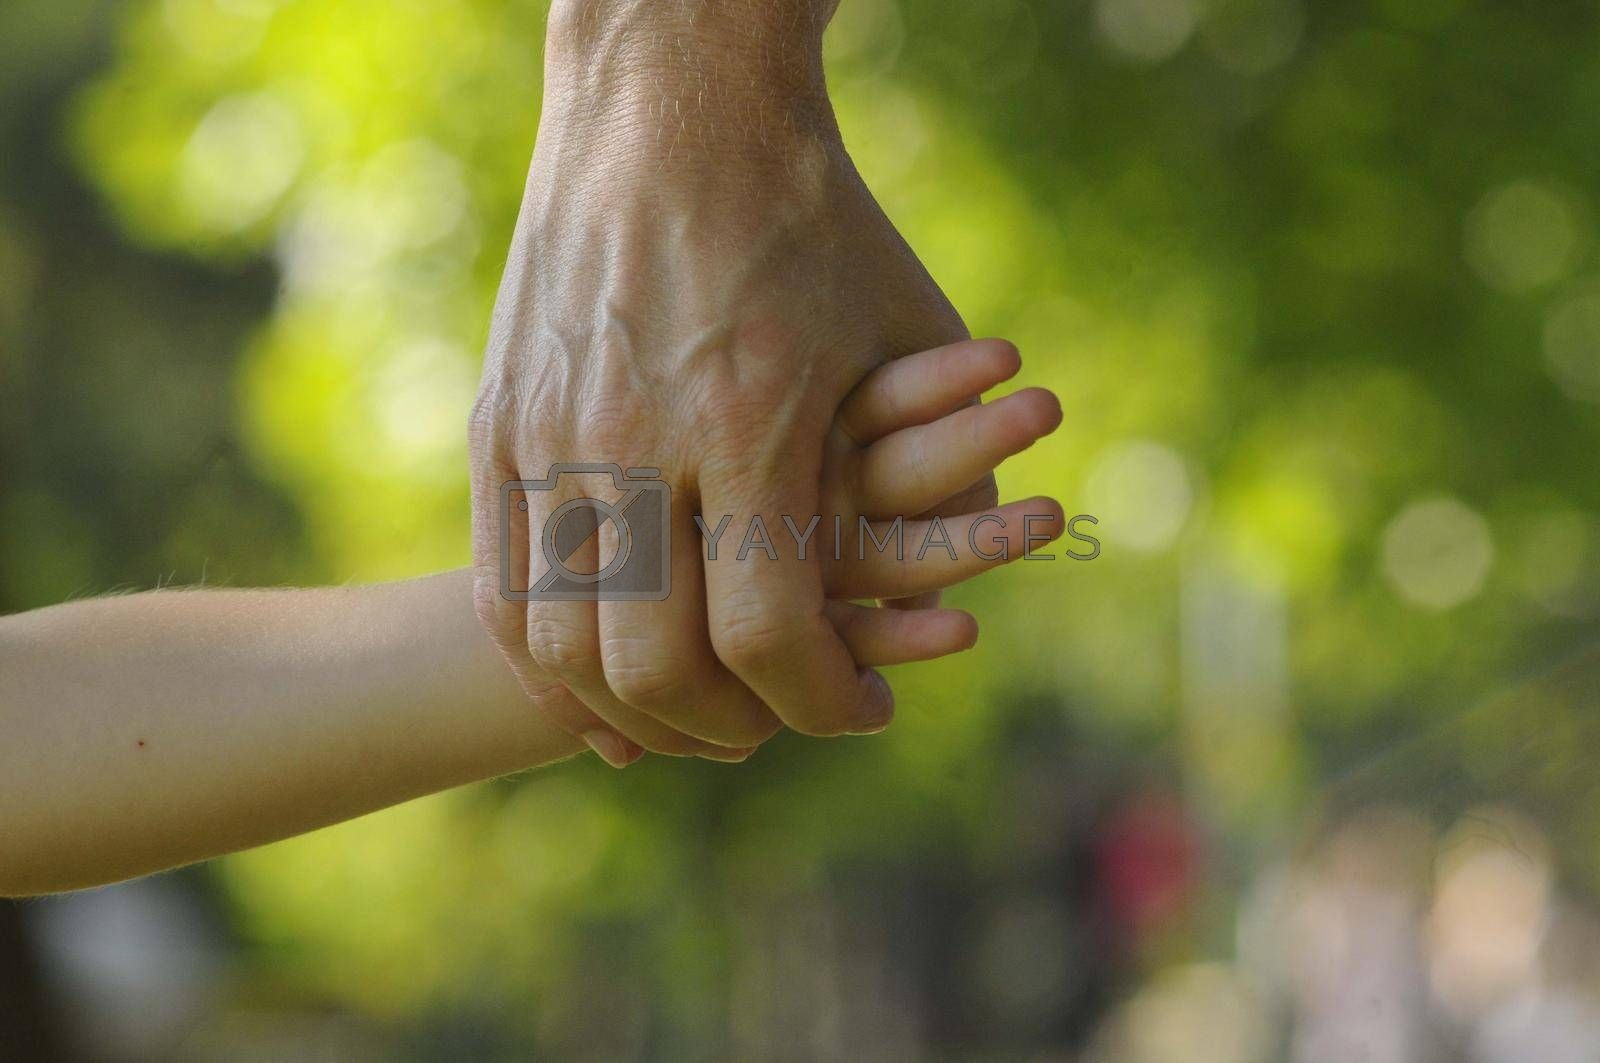 child and mother holding hands, sign of trust and intimacy